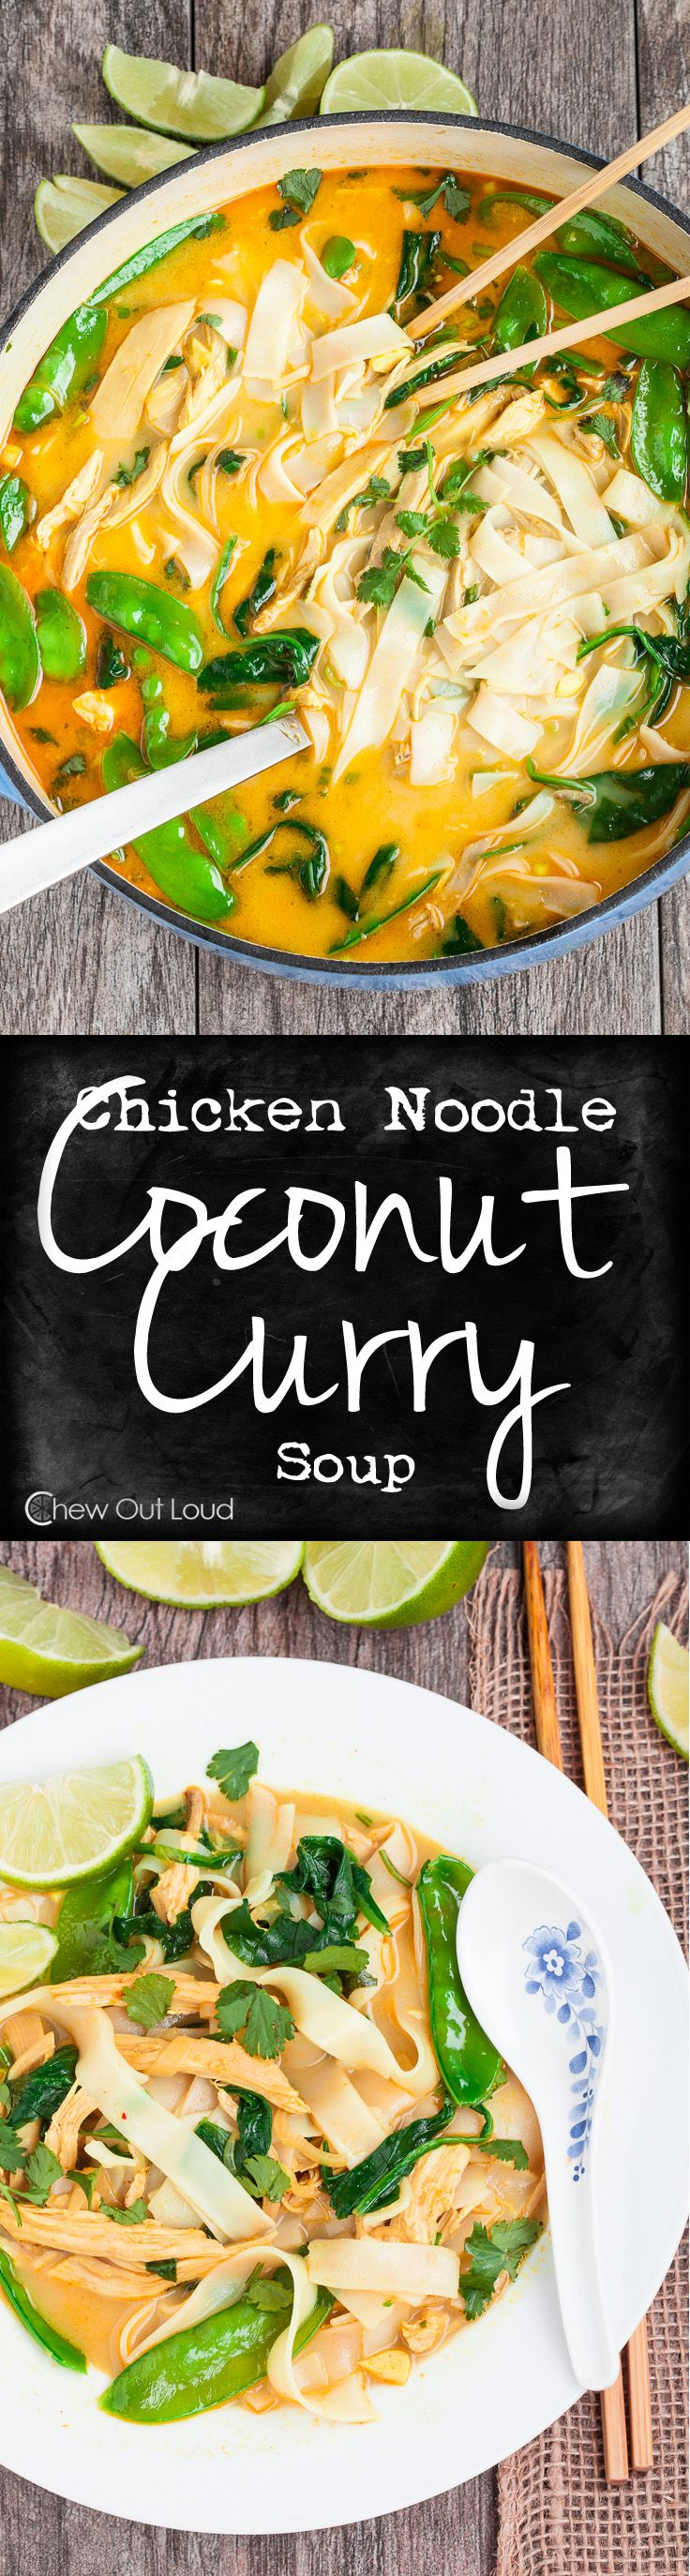 Coconut Curry Chicken Noodle Soup - Healthy, flavorful, and sure to please. Favorite family dinner on chilly evenings.